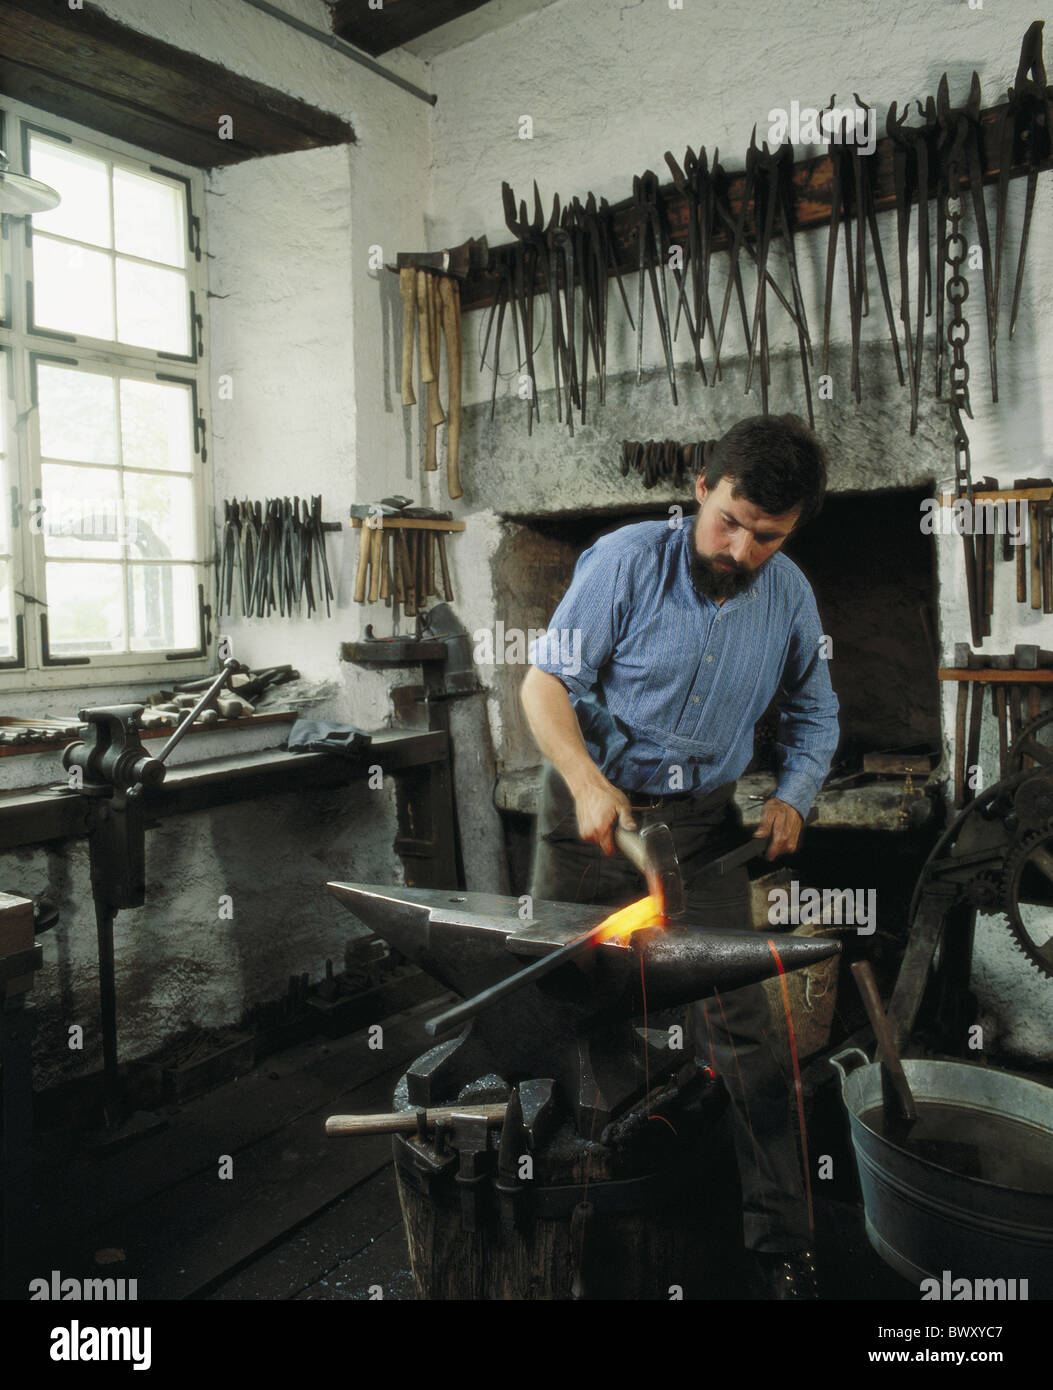 anvil iron fireplace hammer smiths metal processing smith tools - Stock Image